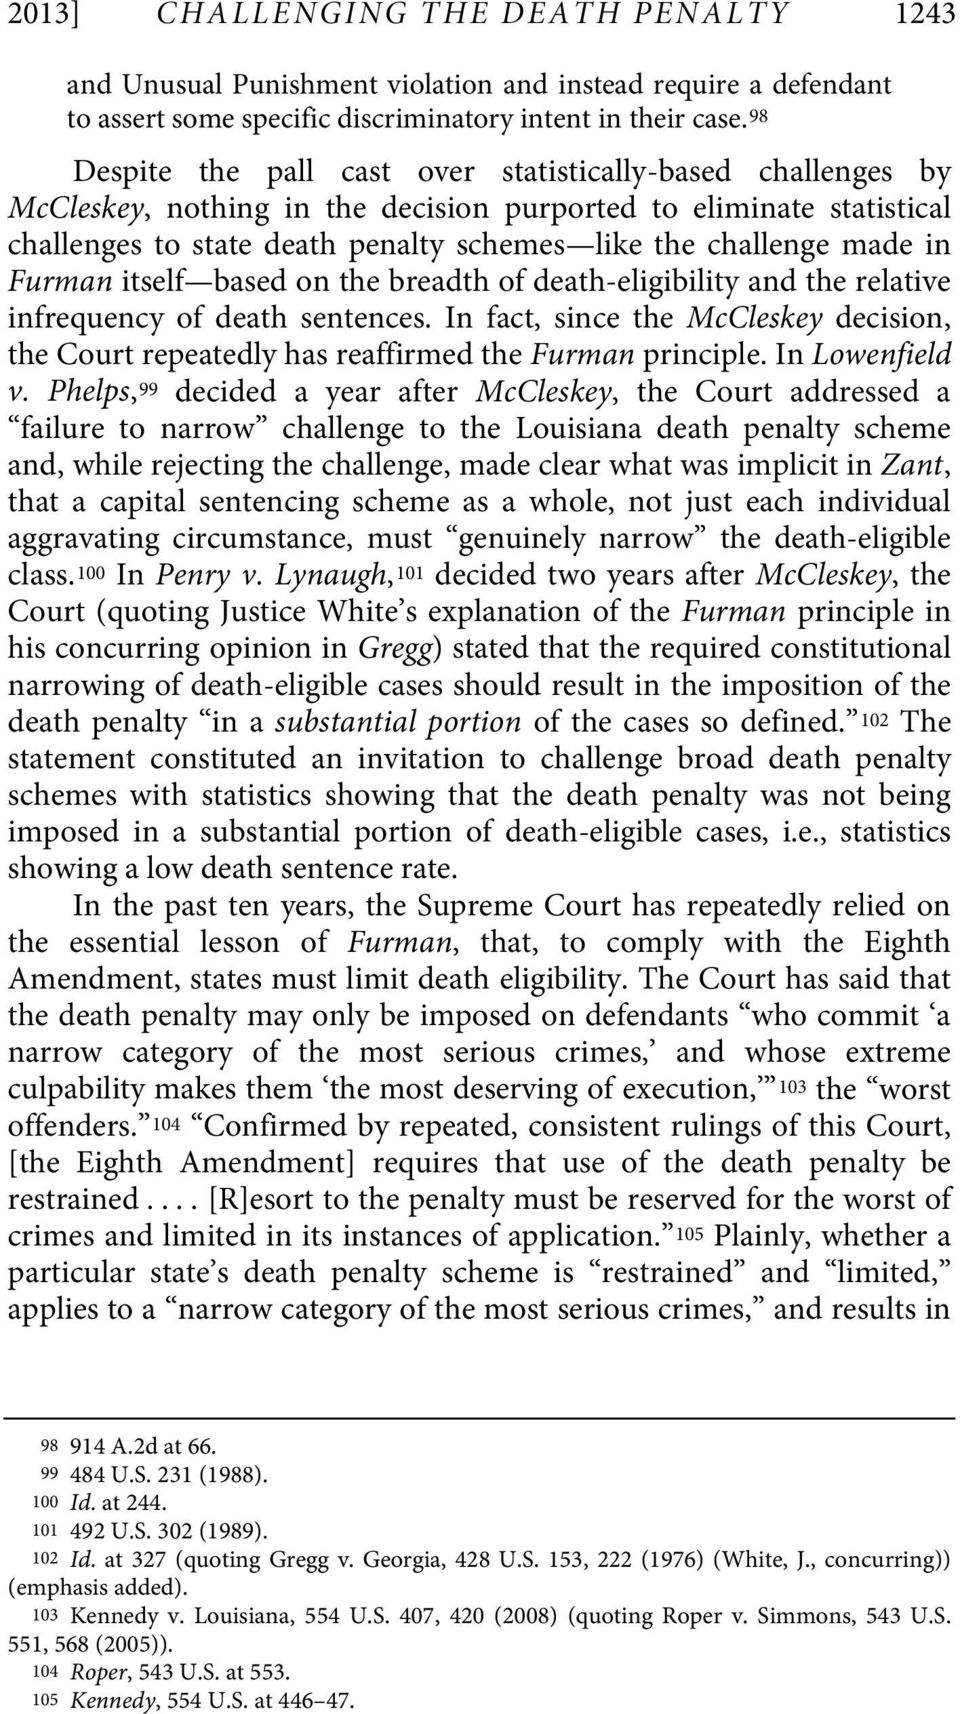 in Furman itself based on the breadth of death-eligibility and the relative infrequency of death sentences.